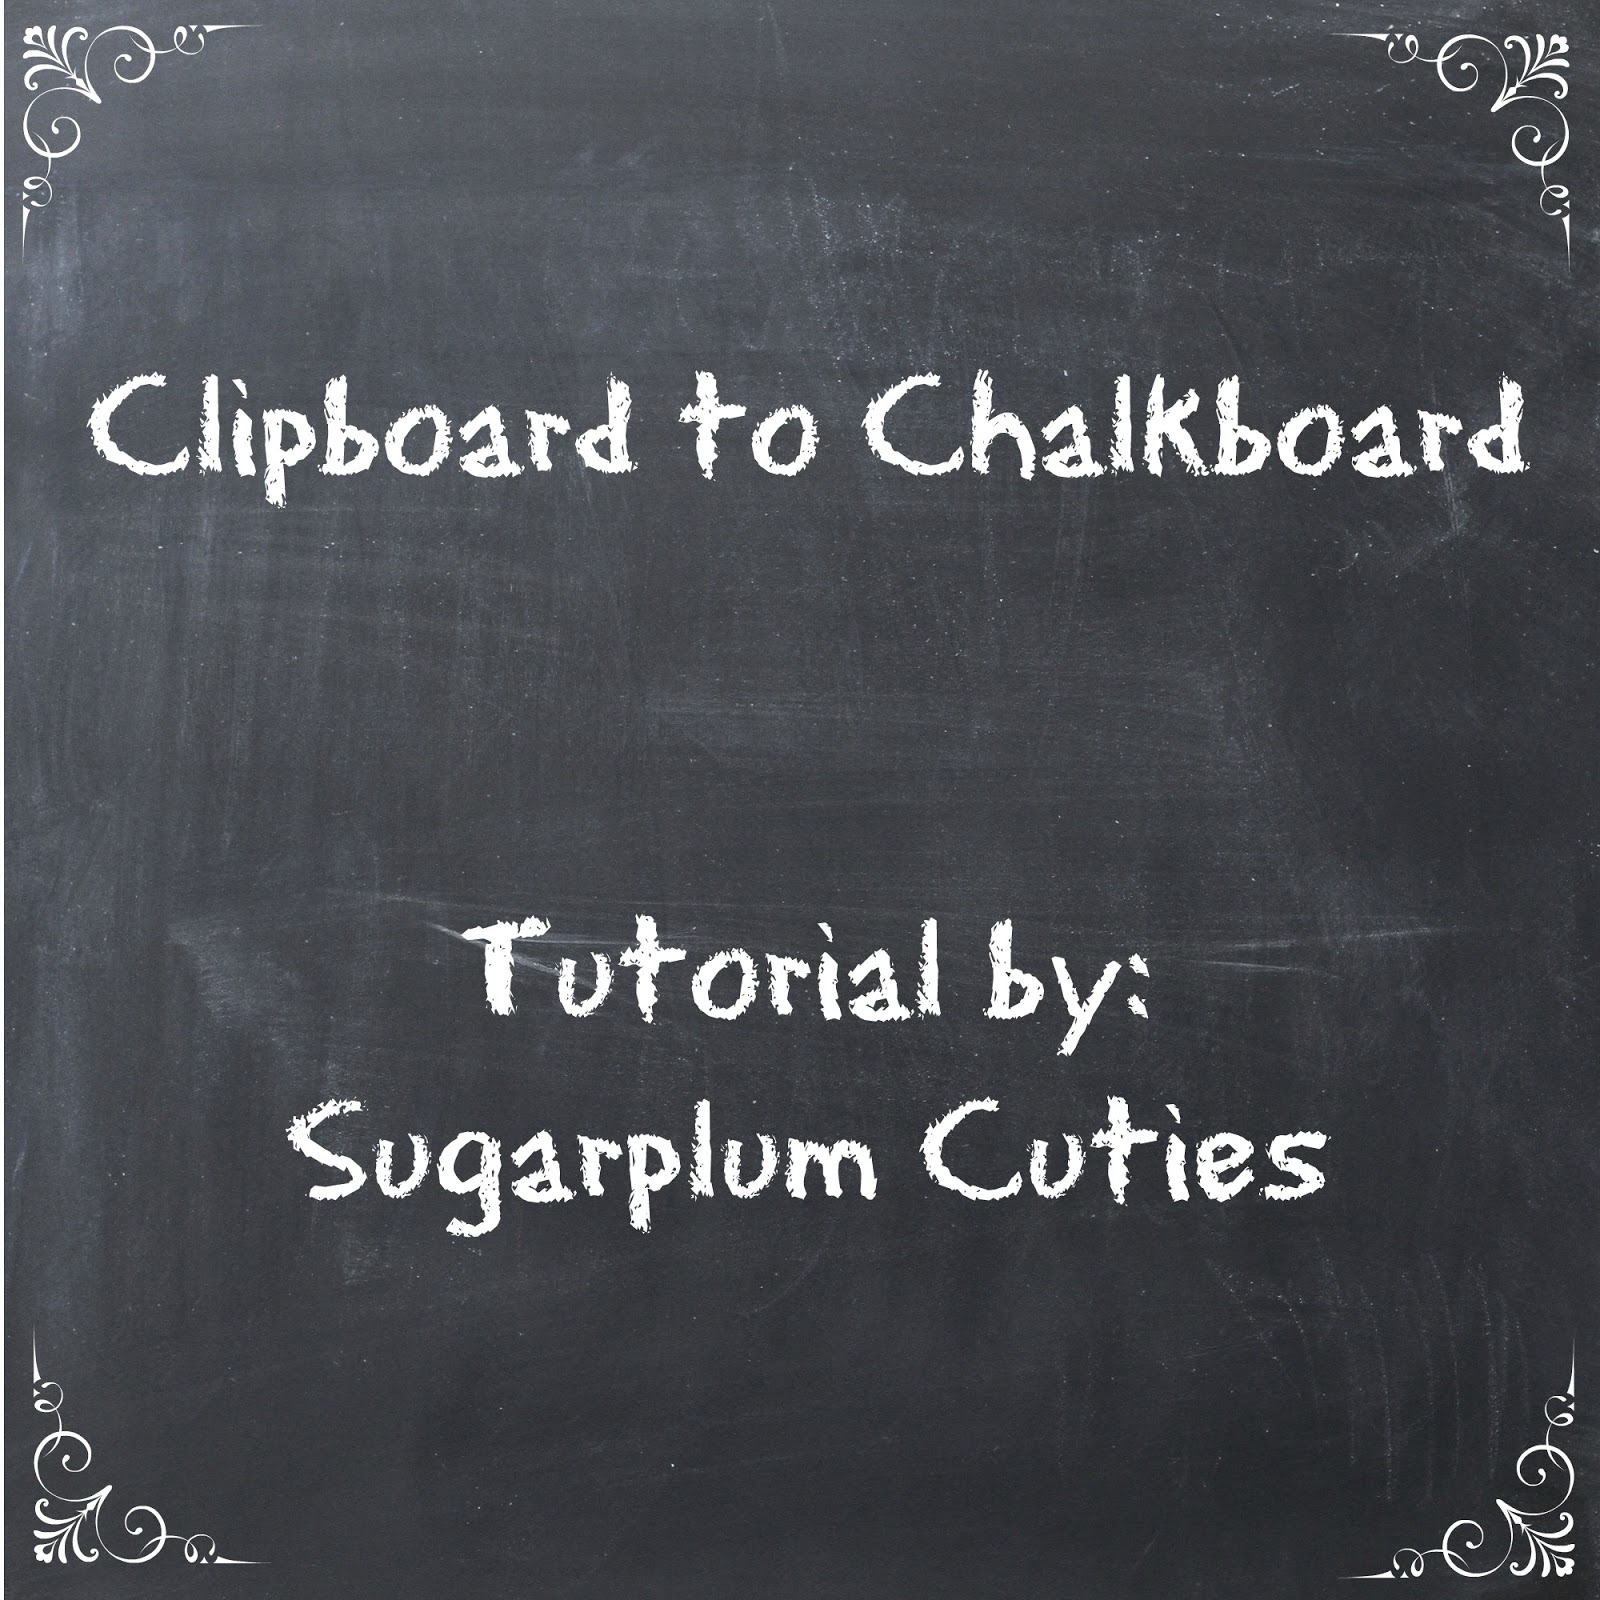 Sugarplum Cuties: Tutorial: Turn a Clipboard into a Chalkboard